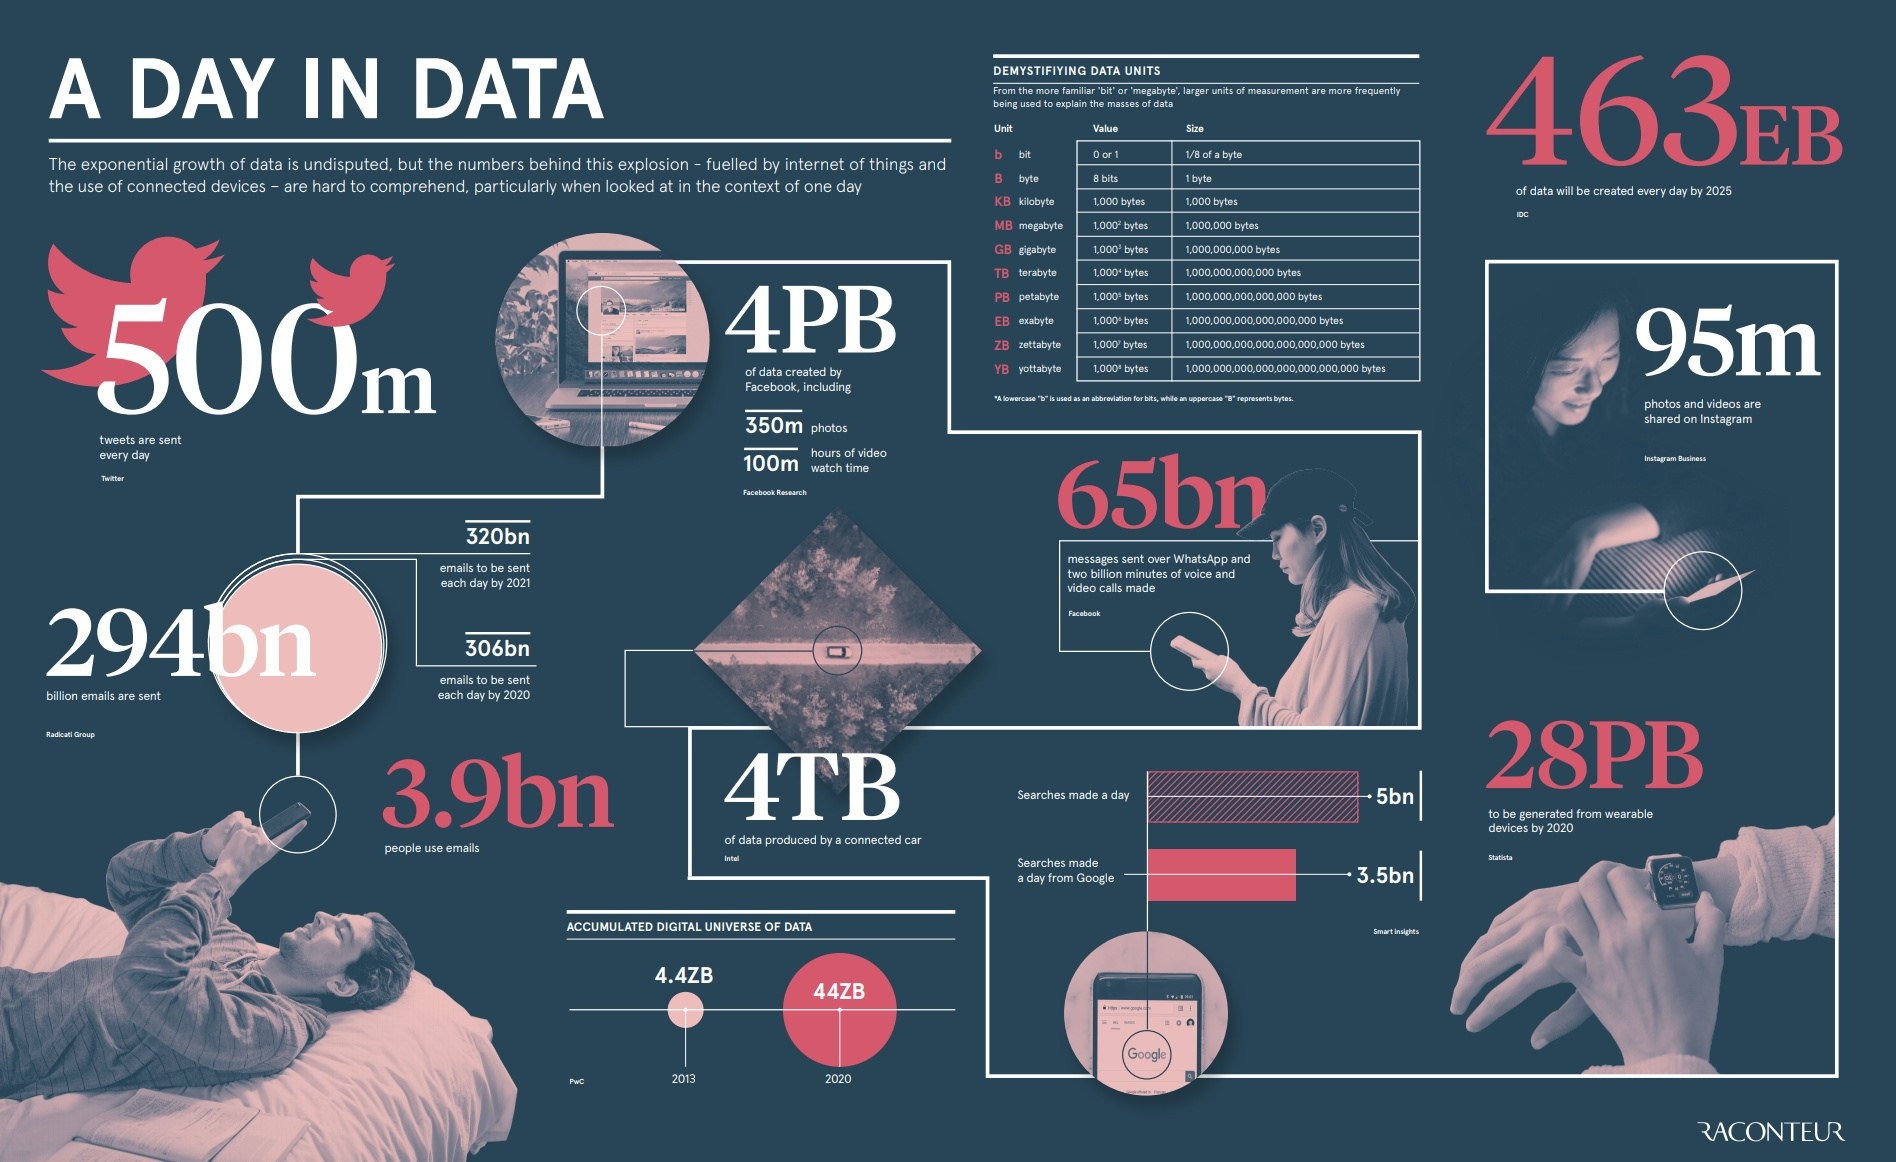 a day in data